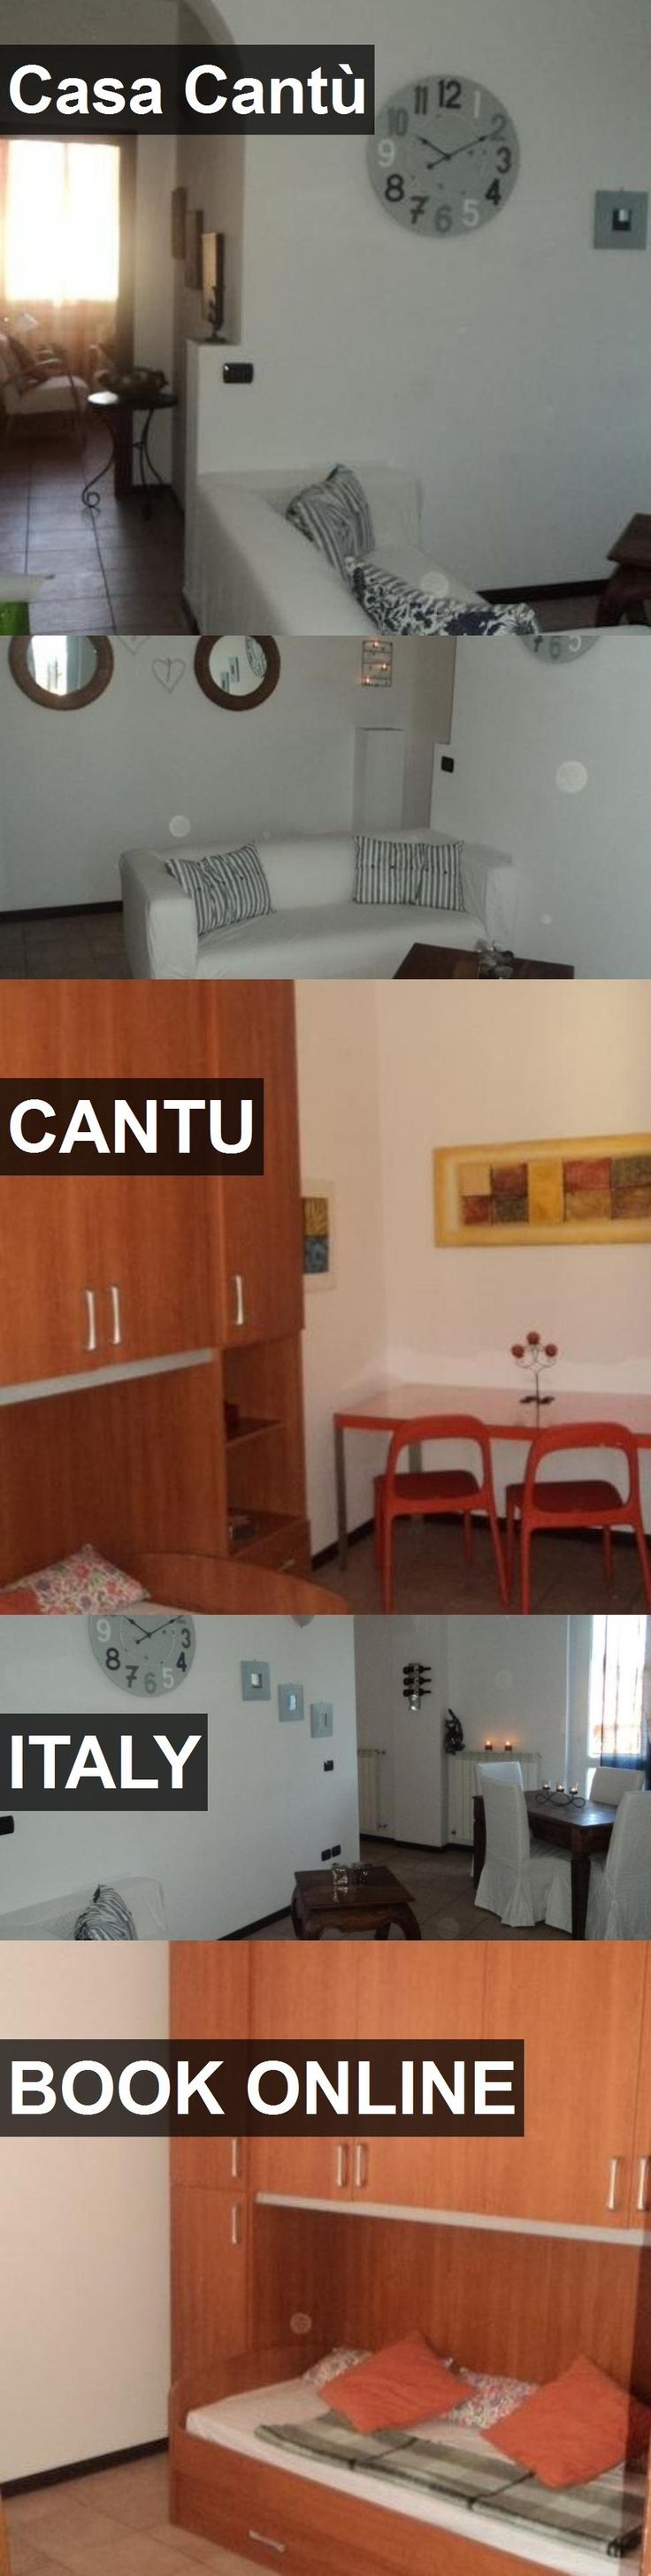 Hotel Casa Cantù in Cantu, Italy. For more information, photos, reviews and best prices please follow the link. #Italy #Cantu #travel #vacation #hotel